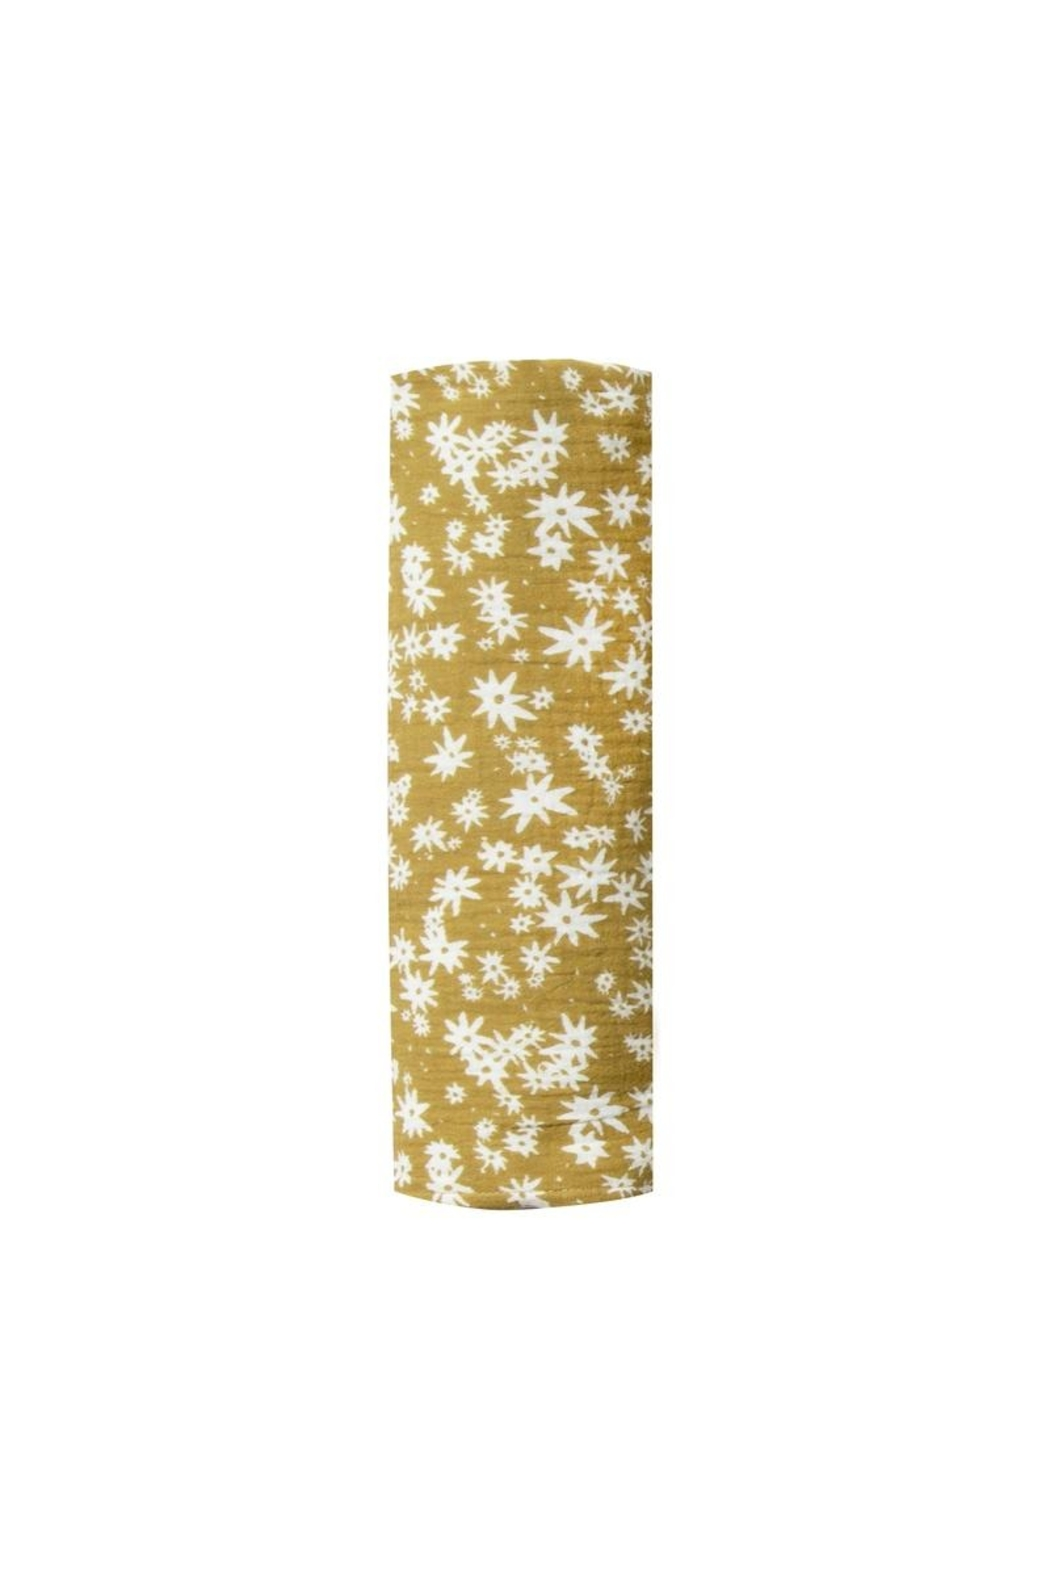 Rylee & Cru Scattered Daisy Swaddle Citron - Main Image